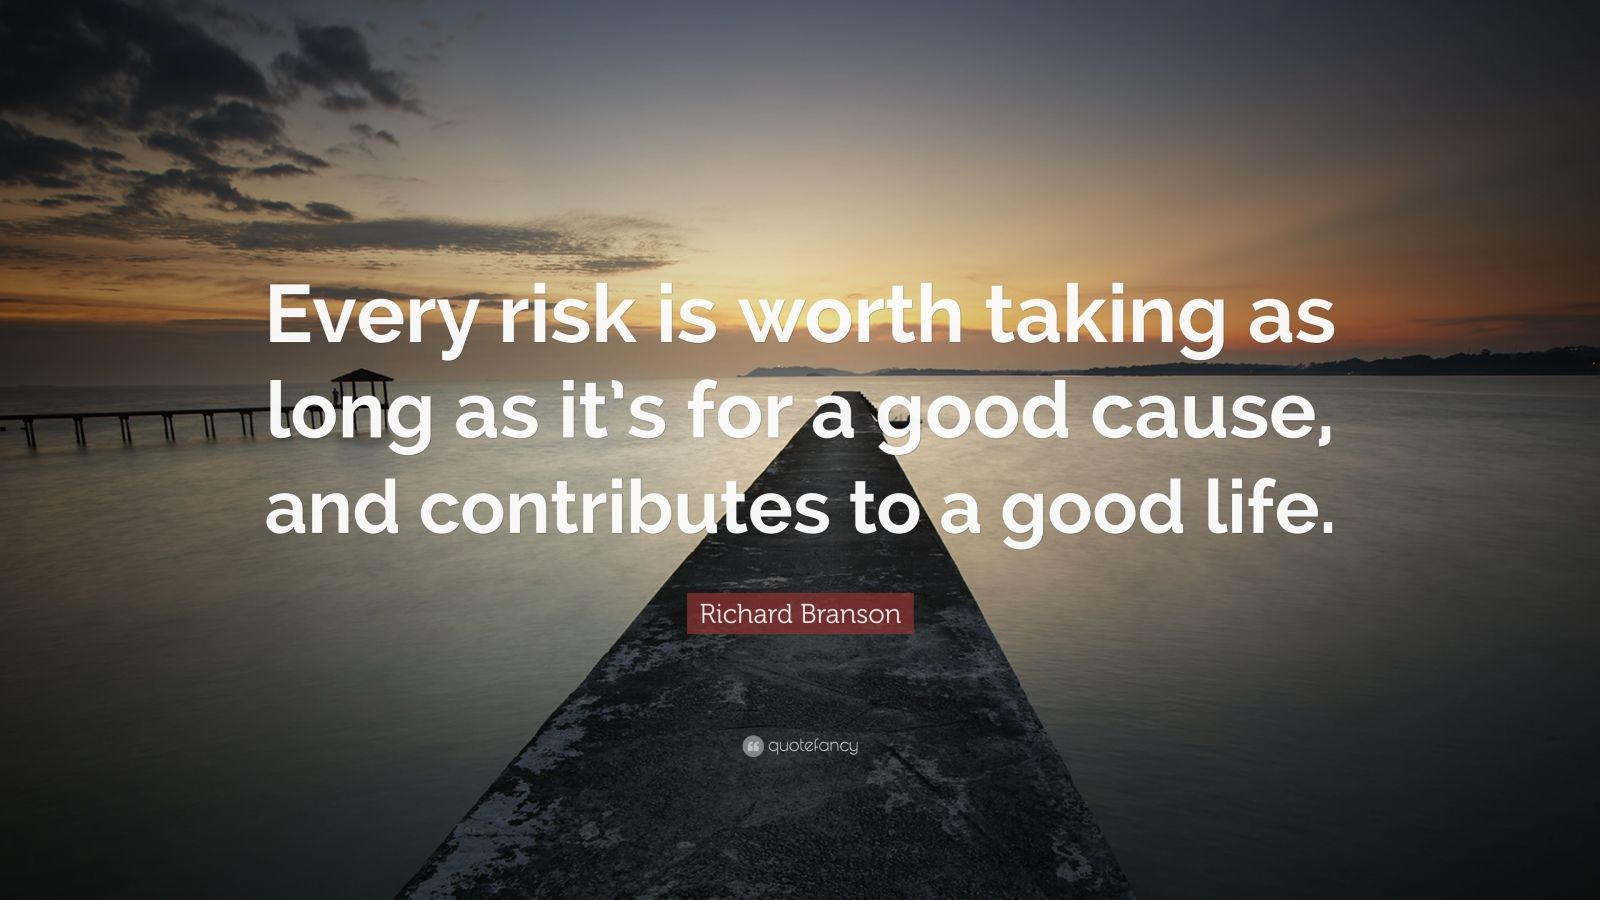 """Richard Branson Quote: """"Every risk is worth taking as long as it's for a good cause, and contributes to a good life."""""""